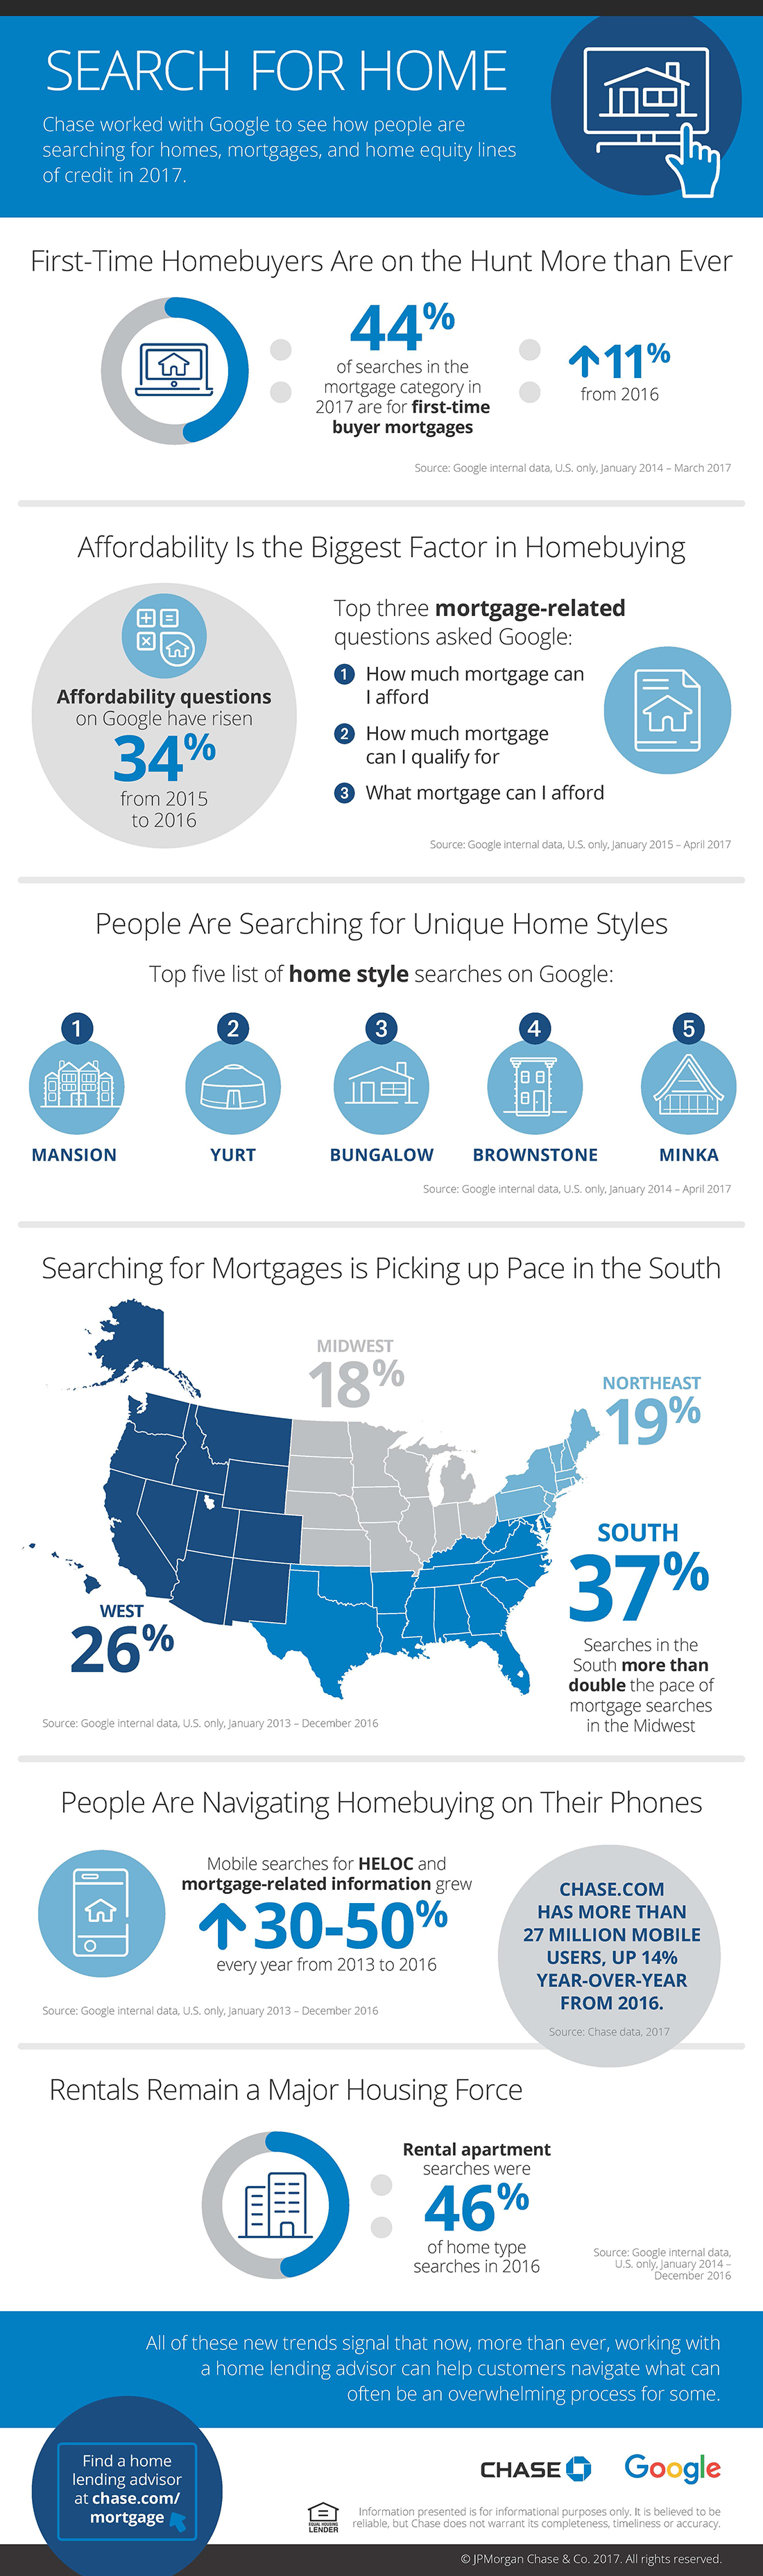 Chase Google Track Down Where Buyers Start Their House Hunt